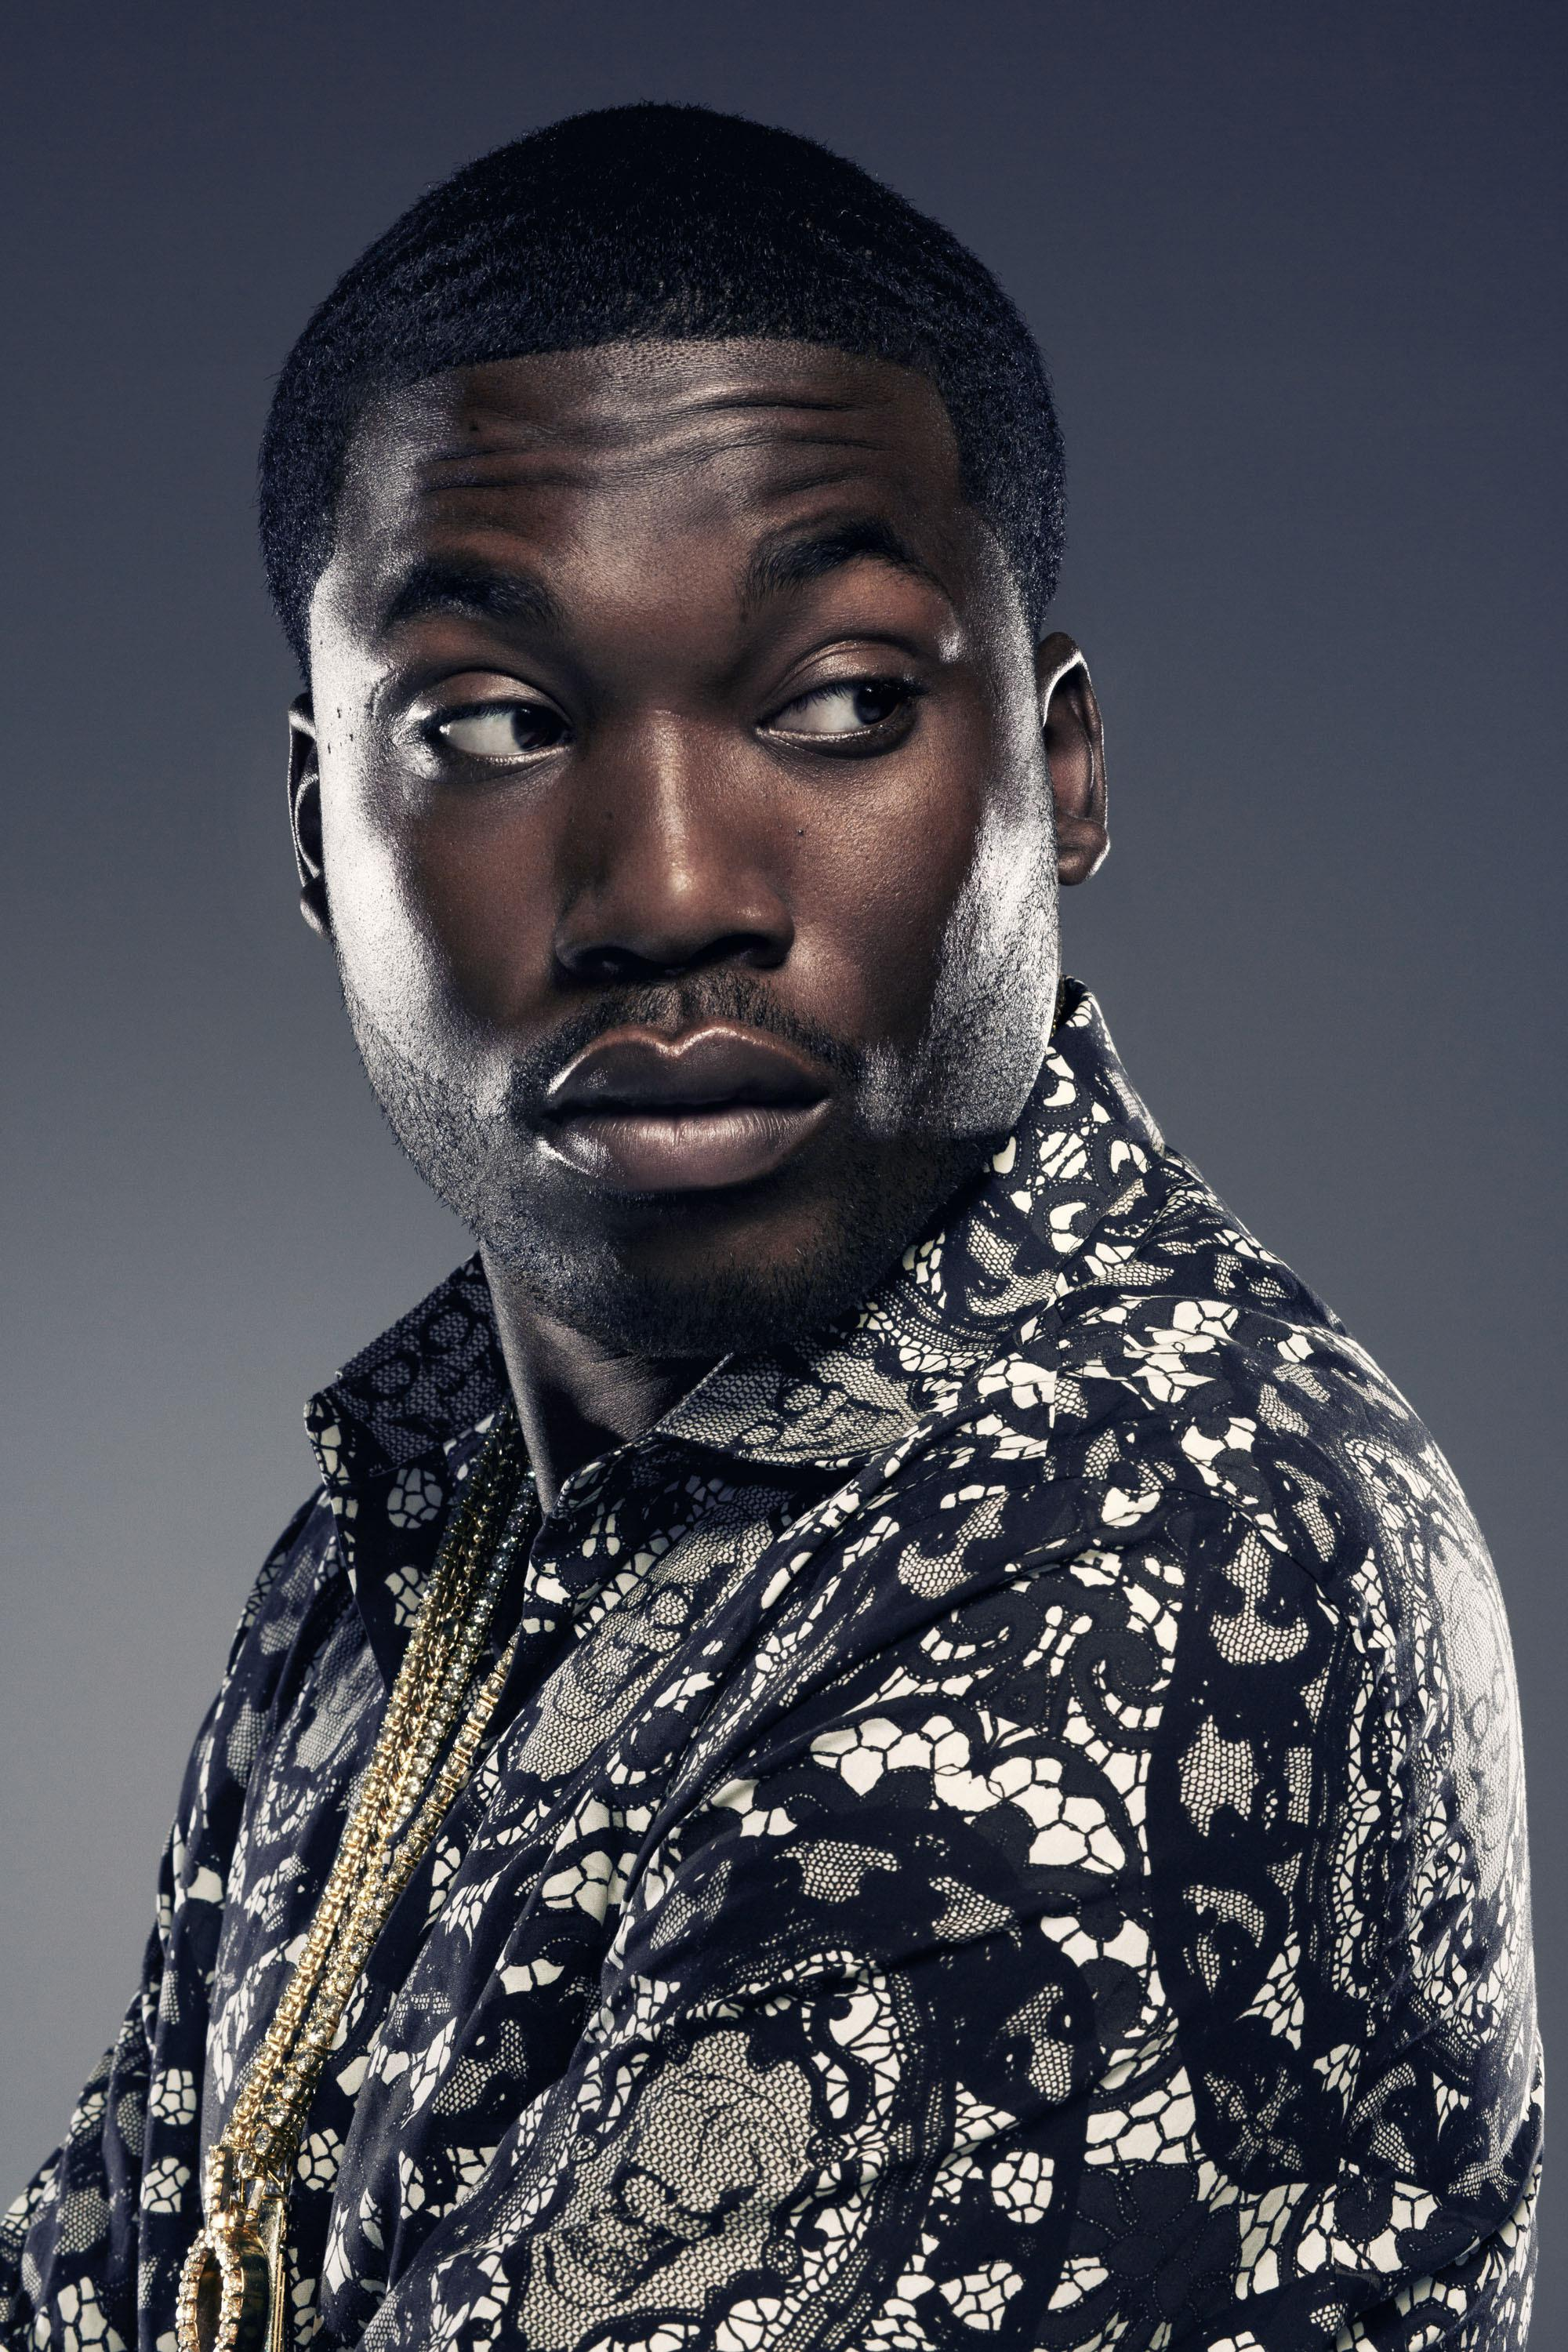 Meek Mill de son vrai nom Robert Rihmeek Williams né le 6 mai 1987 à Philadelphie en Pennsylvanie est un rappeur et auteurcompositeur américain